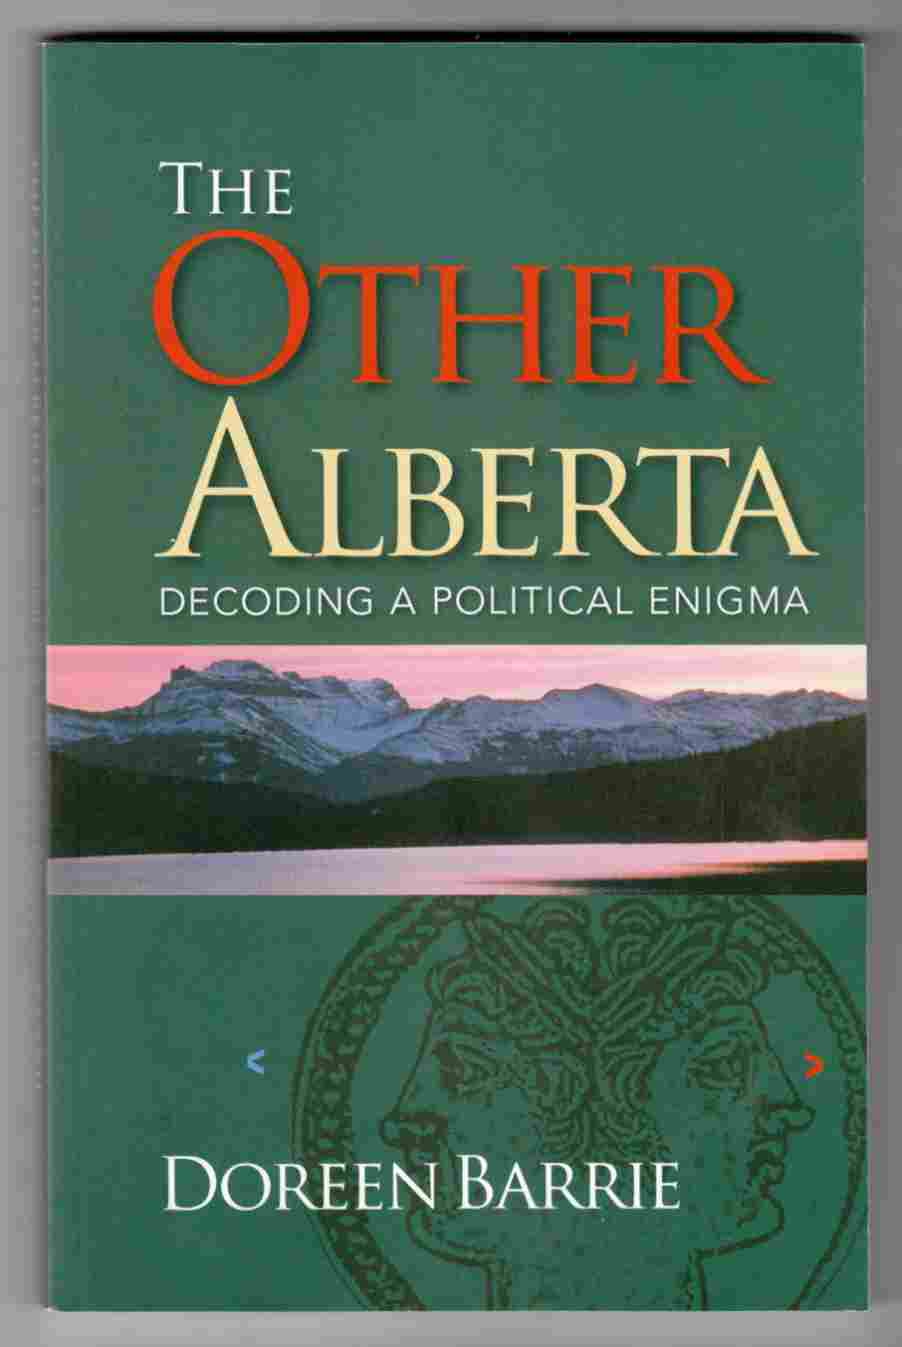 Image for The Other Alberta Decoding a Political Enigma